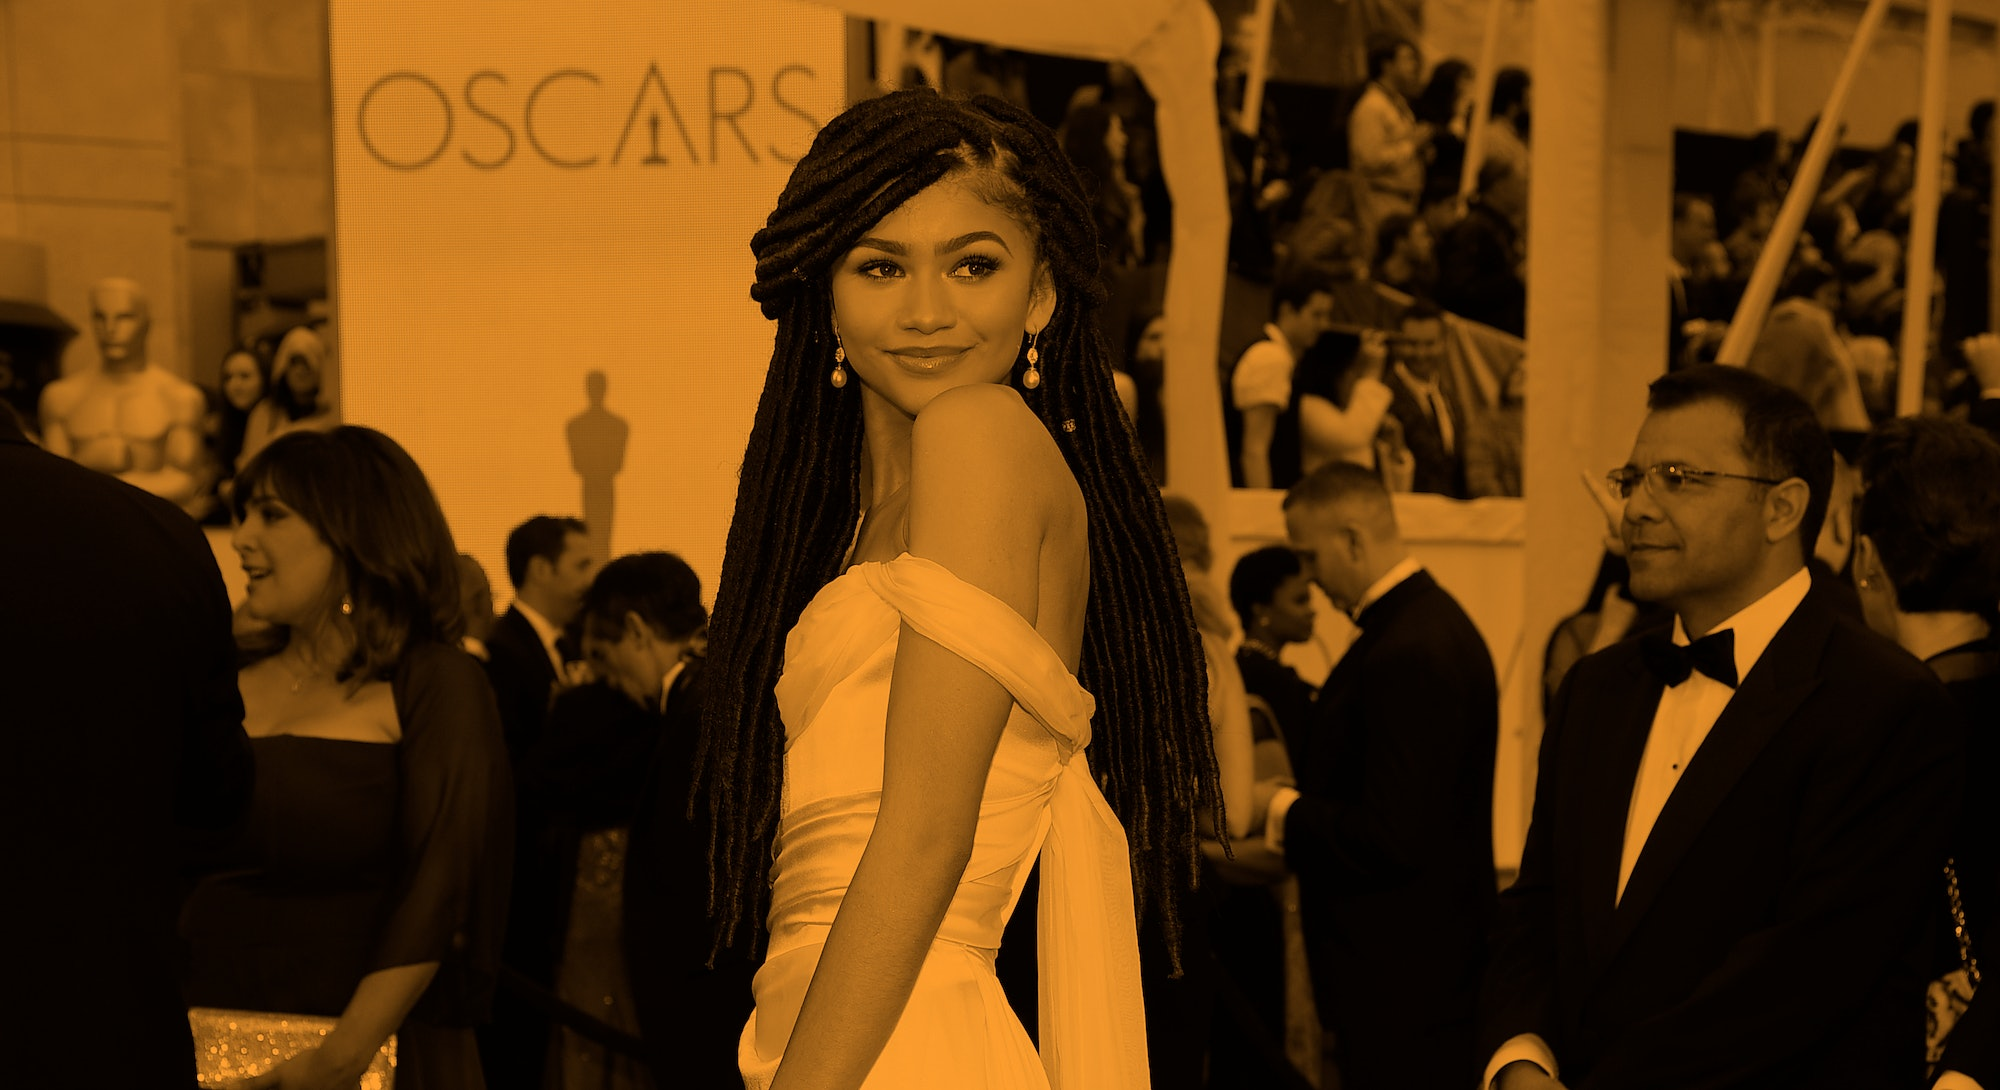 Zendaya wearing a Vivienne Westwood gown to the 2015 Oscars.